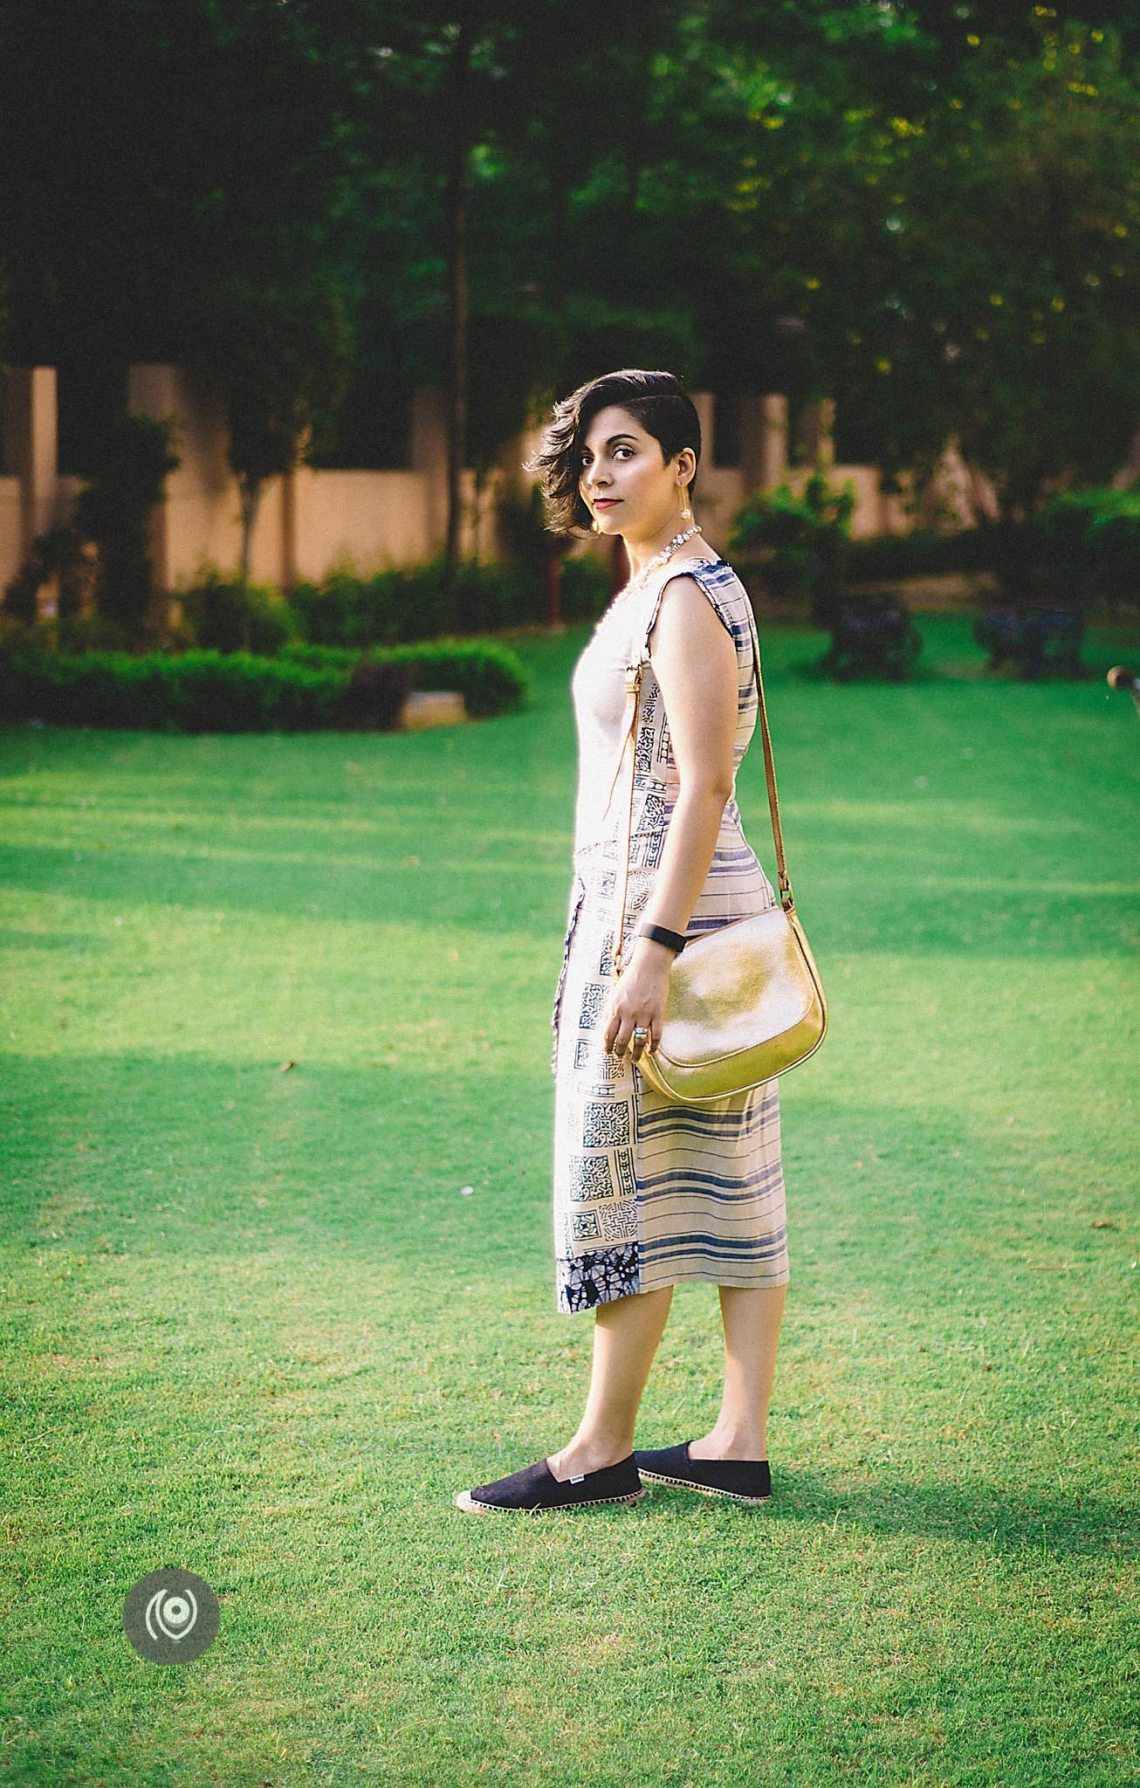 Naina.co-Raconteuse-Visuelle-Photographer-Blogger-Storyteller-Luxury-Lifestyle-CoverUp-Mi-UrvashiKaur-Risa-03